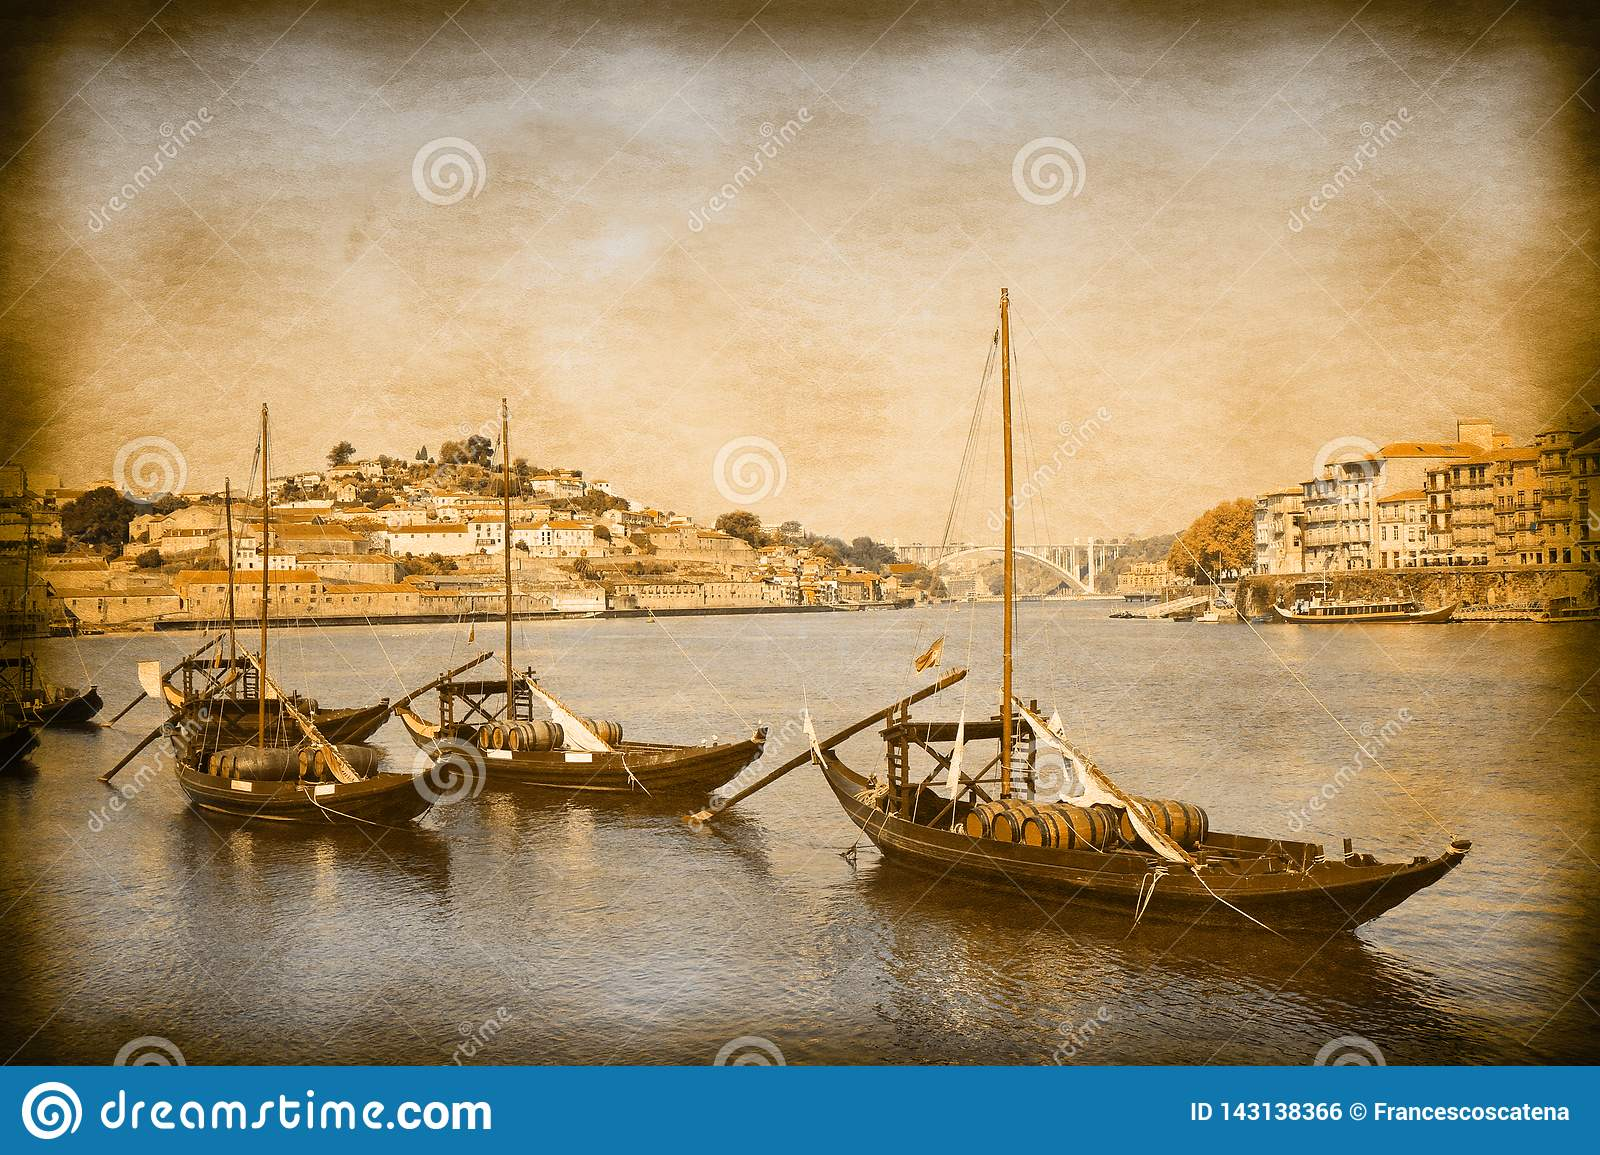 Typical portuguese boats used in the past to transport the famous port wine- Vintage and Retro Photo Effects added